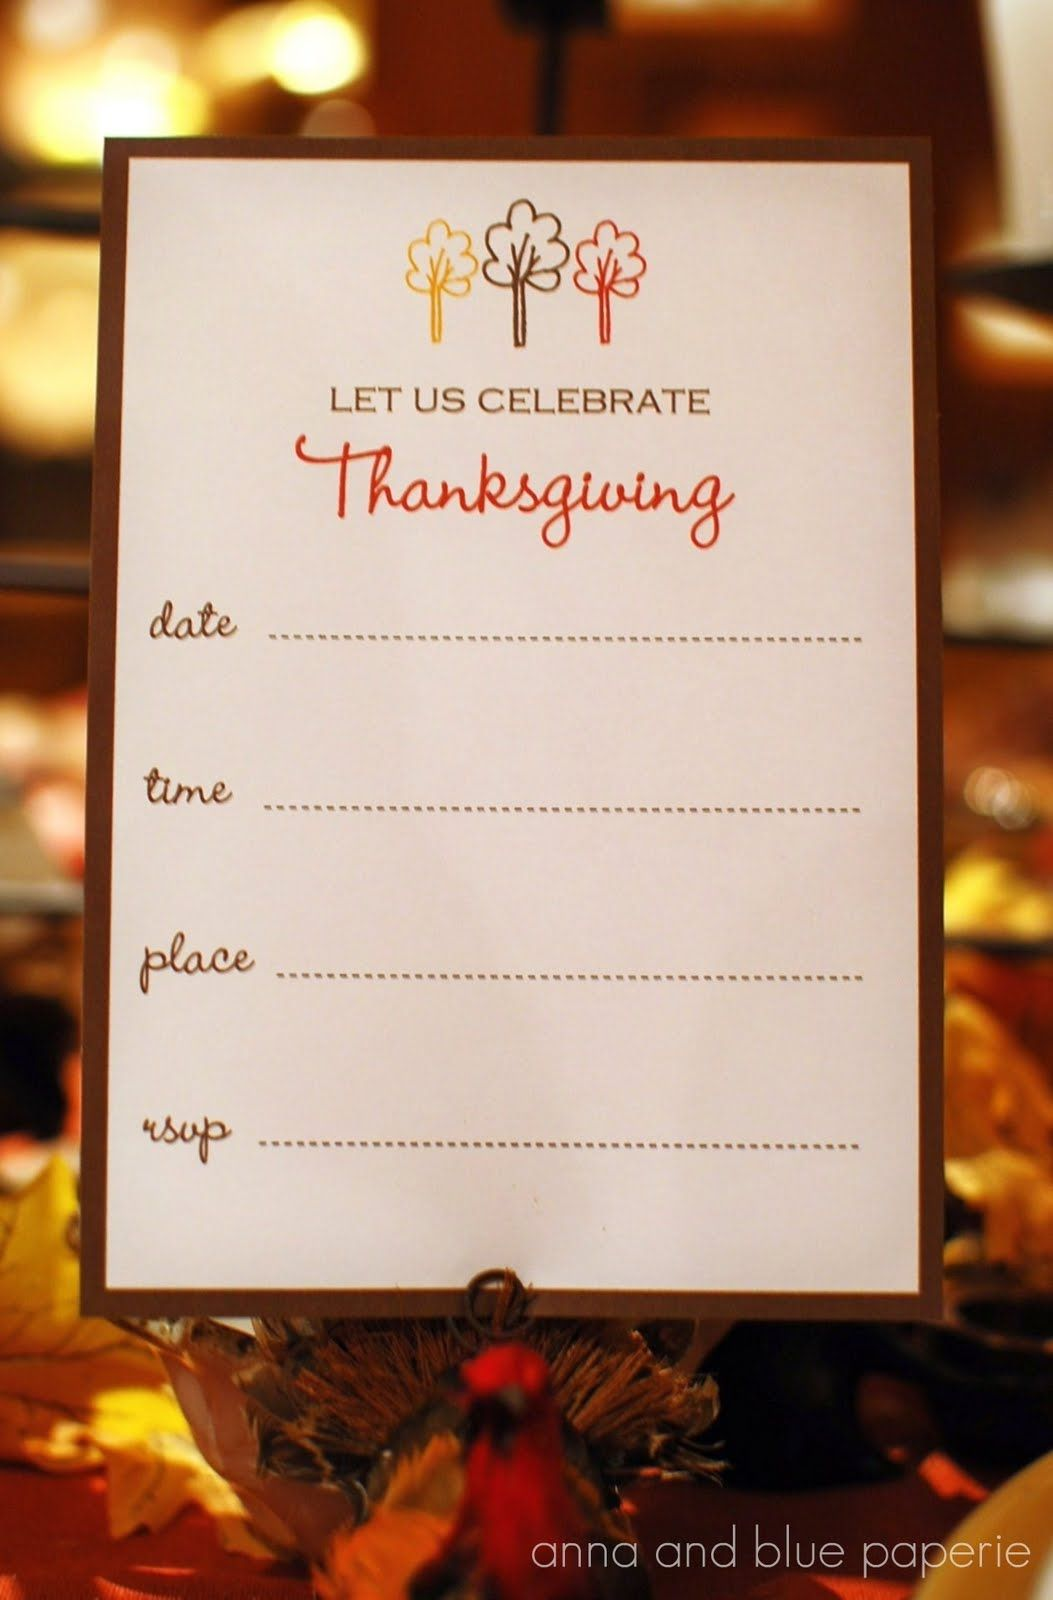 There are some great Thanksgiving templates and printables out there ...